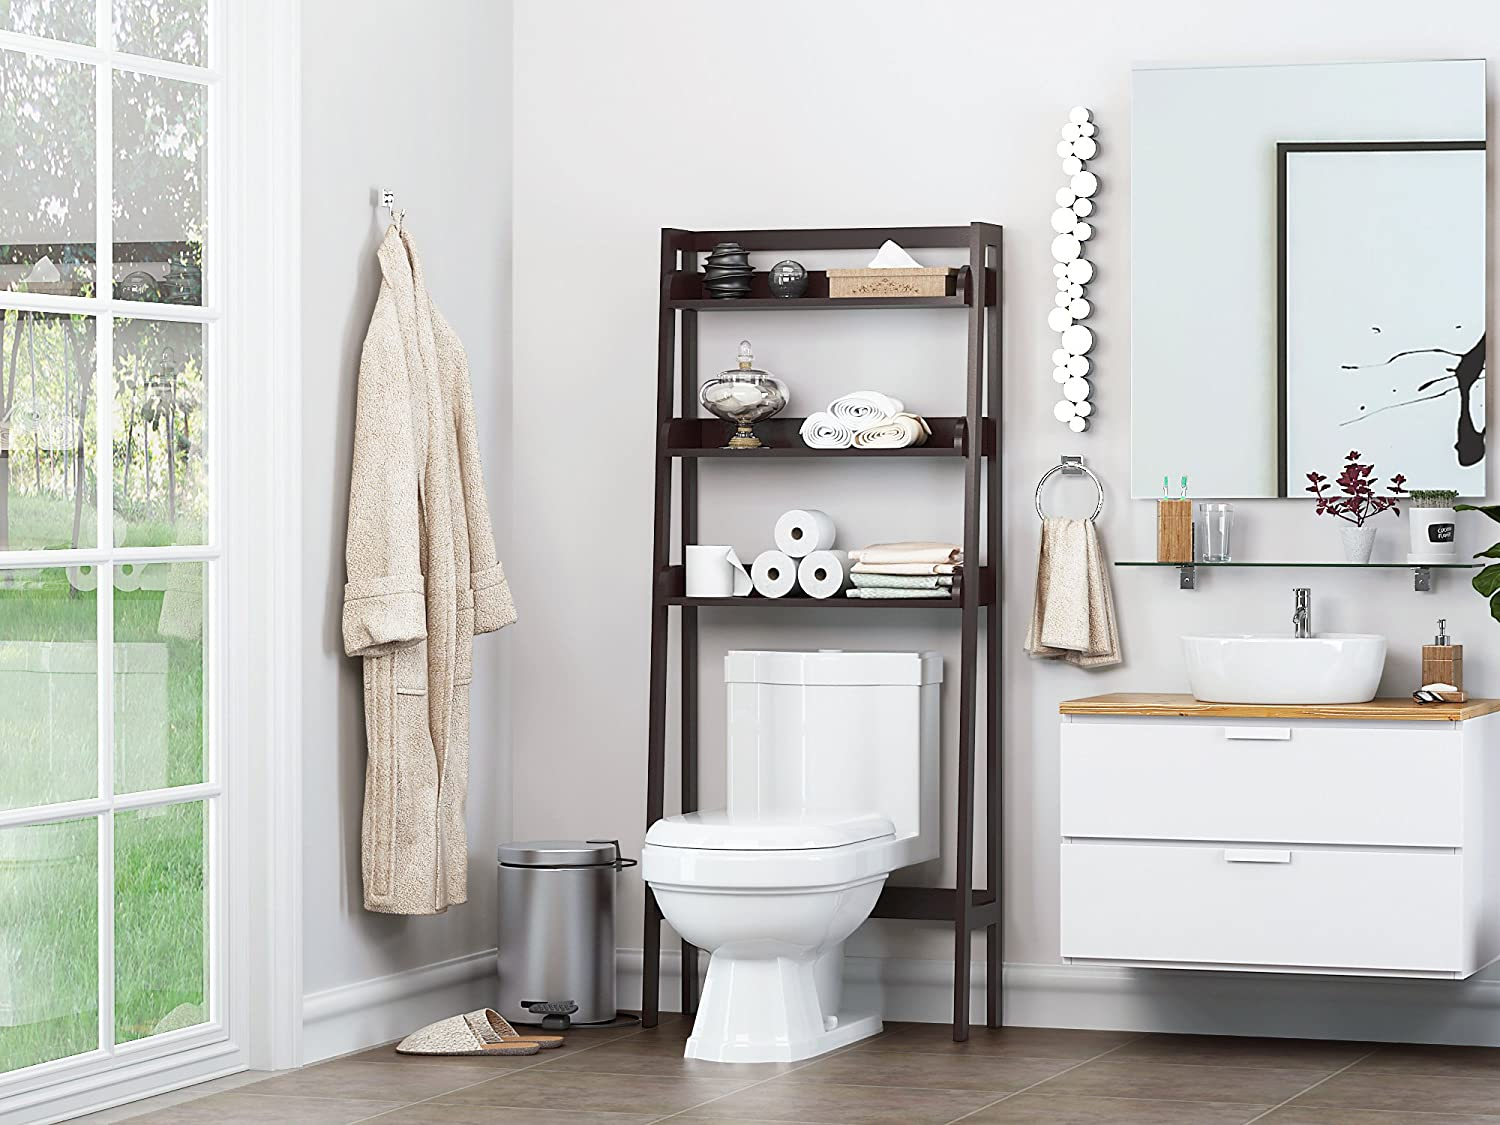 Image result for over toilet storage